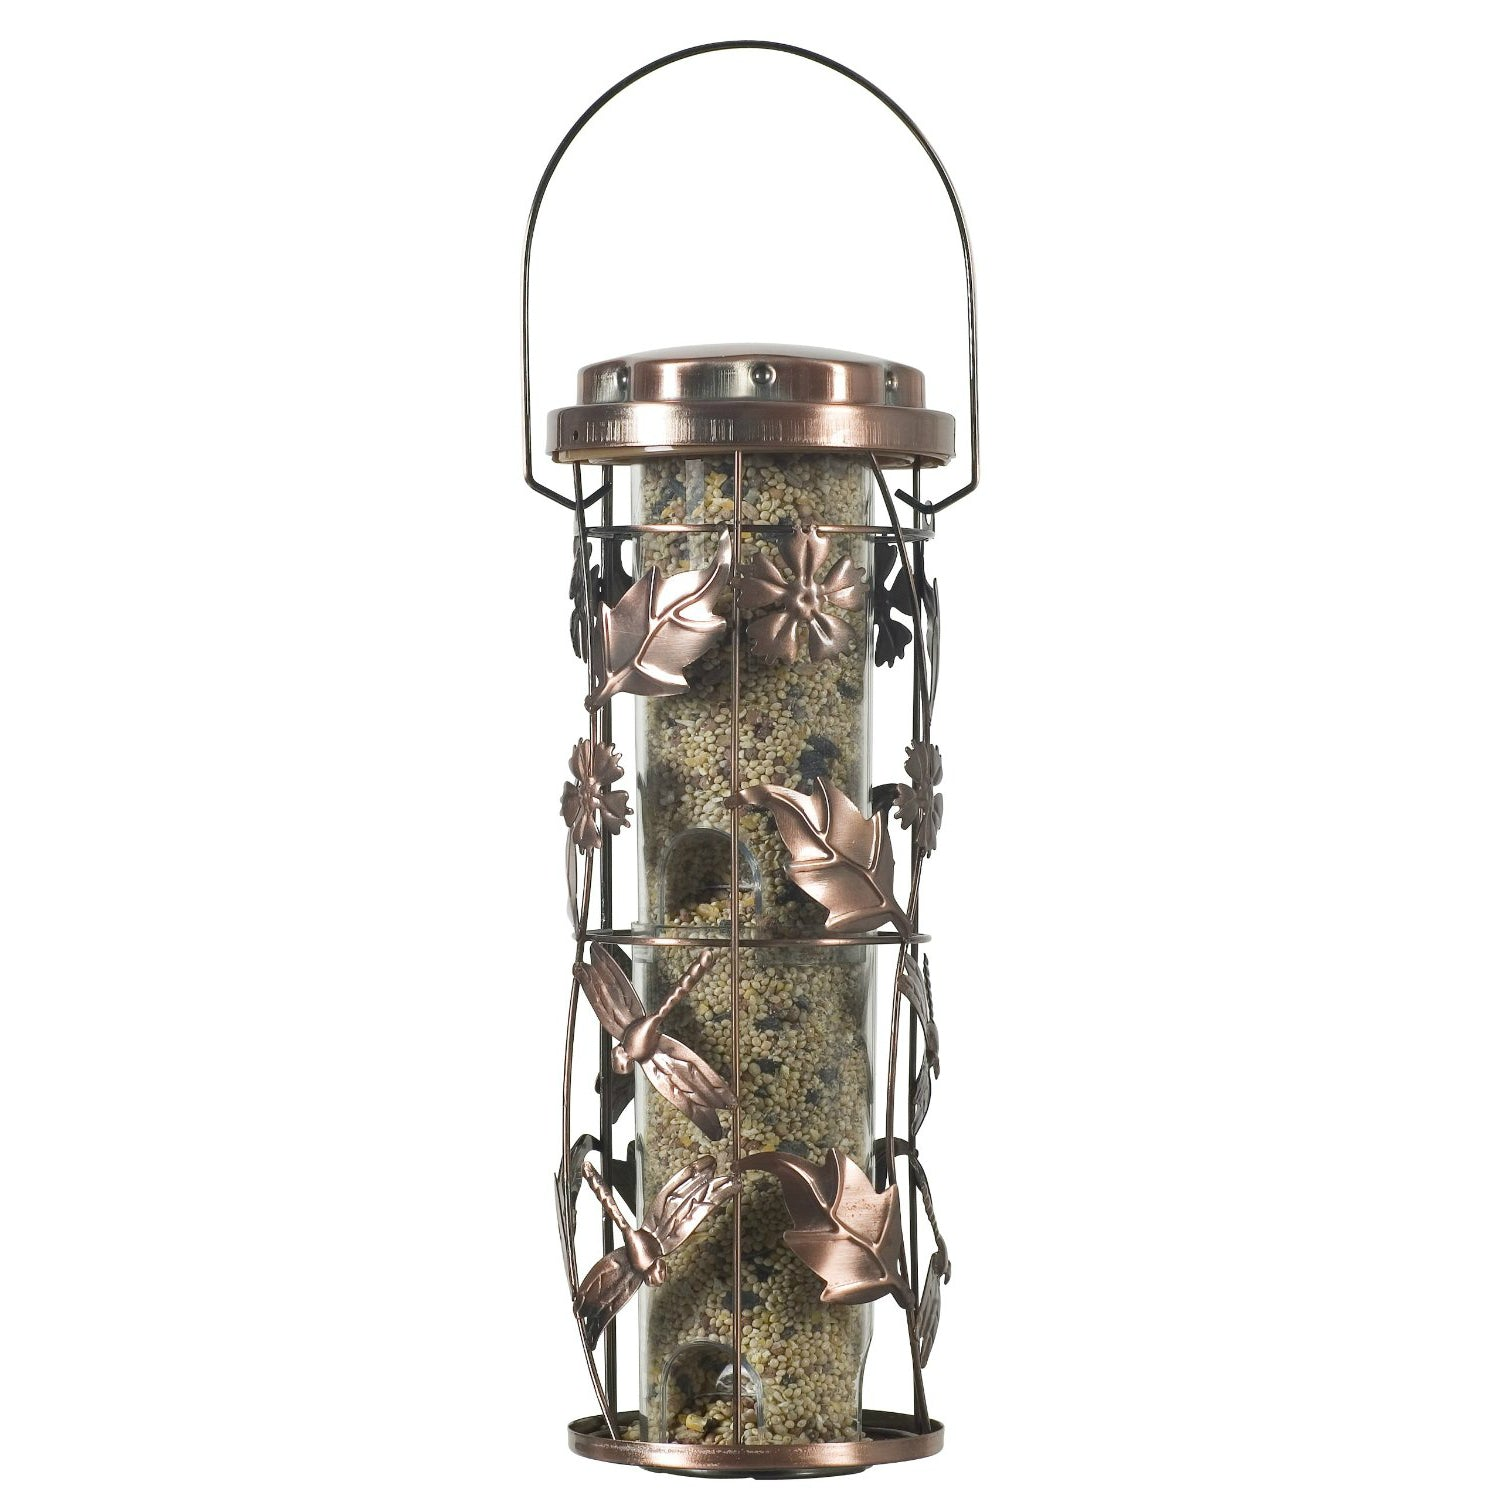 Birdscapes 550 Copper Garden Wild Bird Feeder, 6-feeding Ports